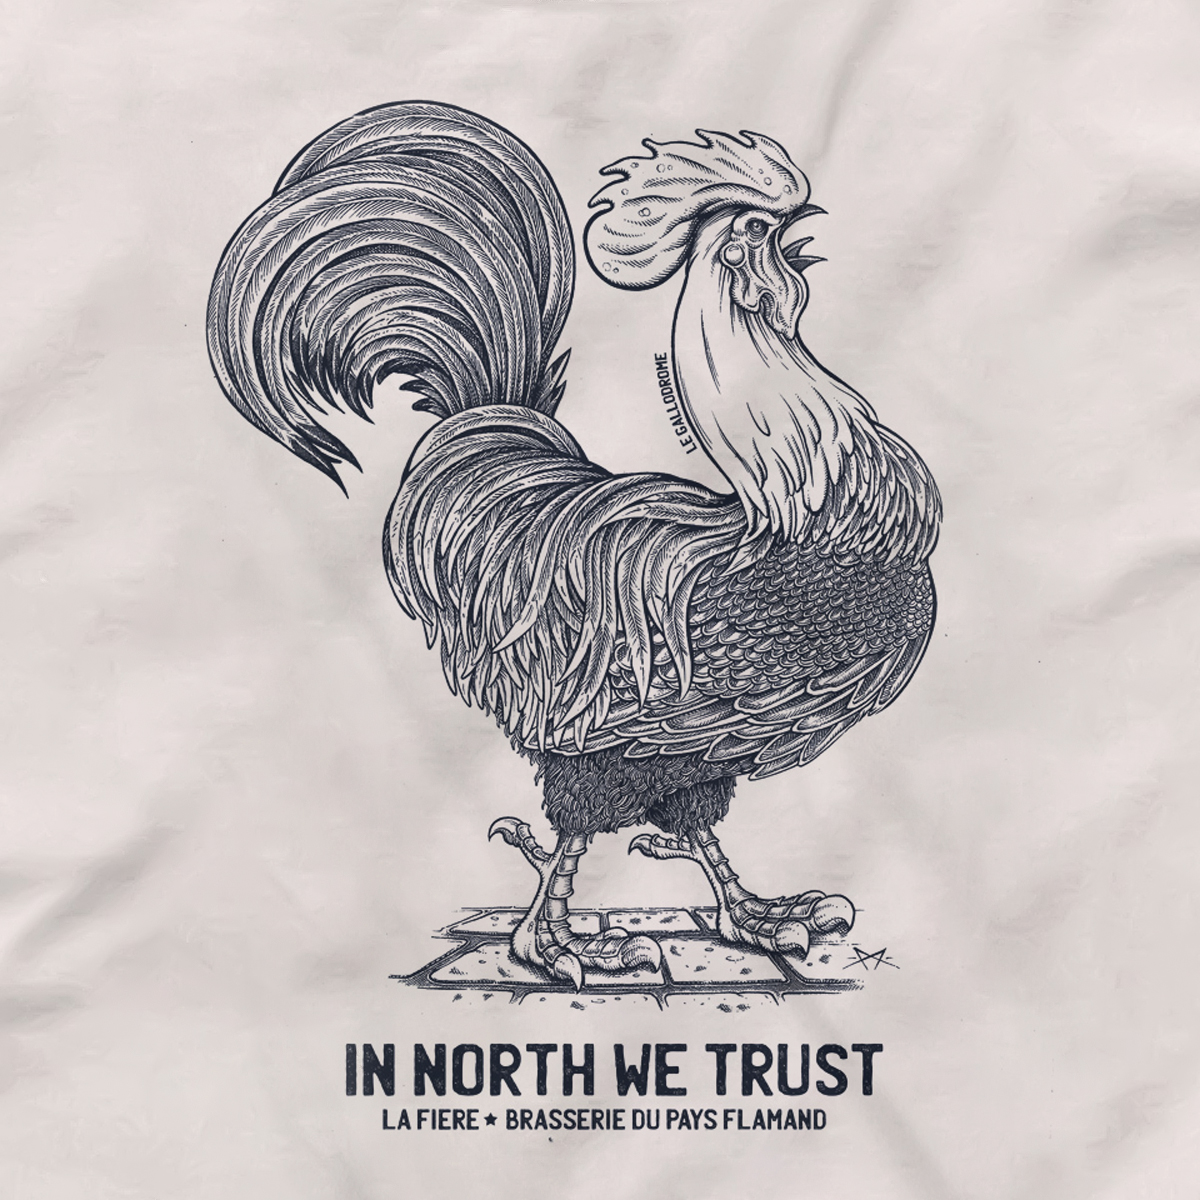 IN NORTH WE TRUST